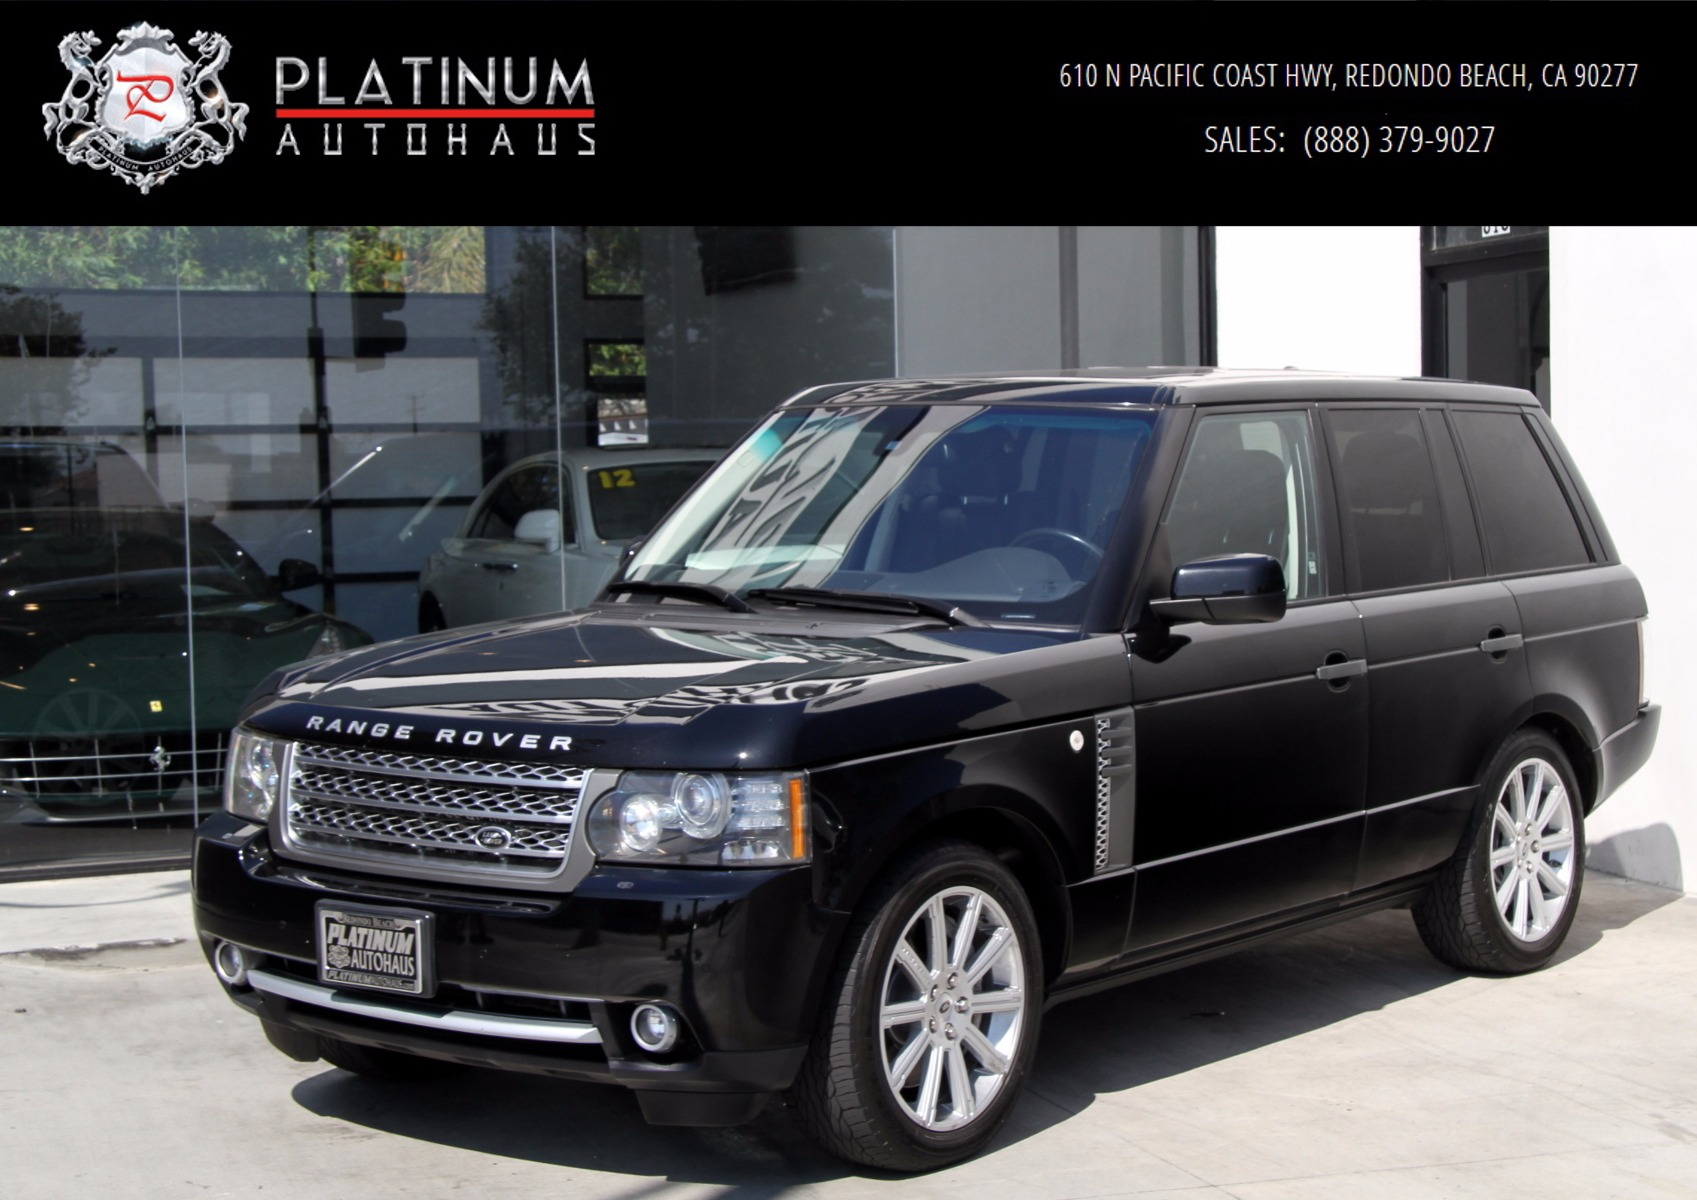 Land Rover Dealer Near Me >> 2011 Land Rover Range Rover Supercharged Stock # 5969 for ...